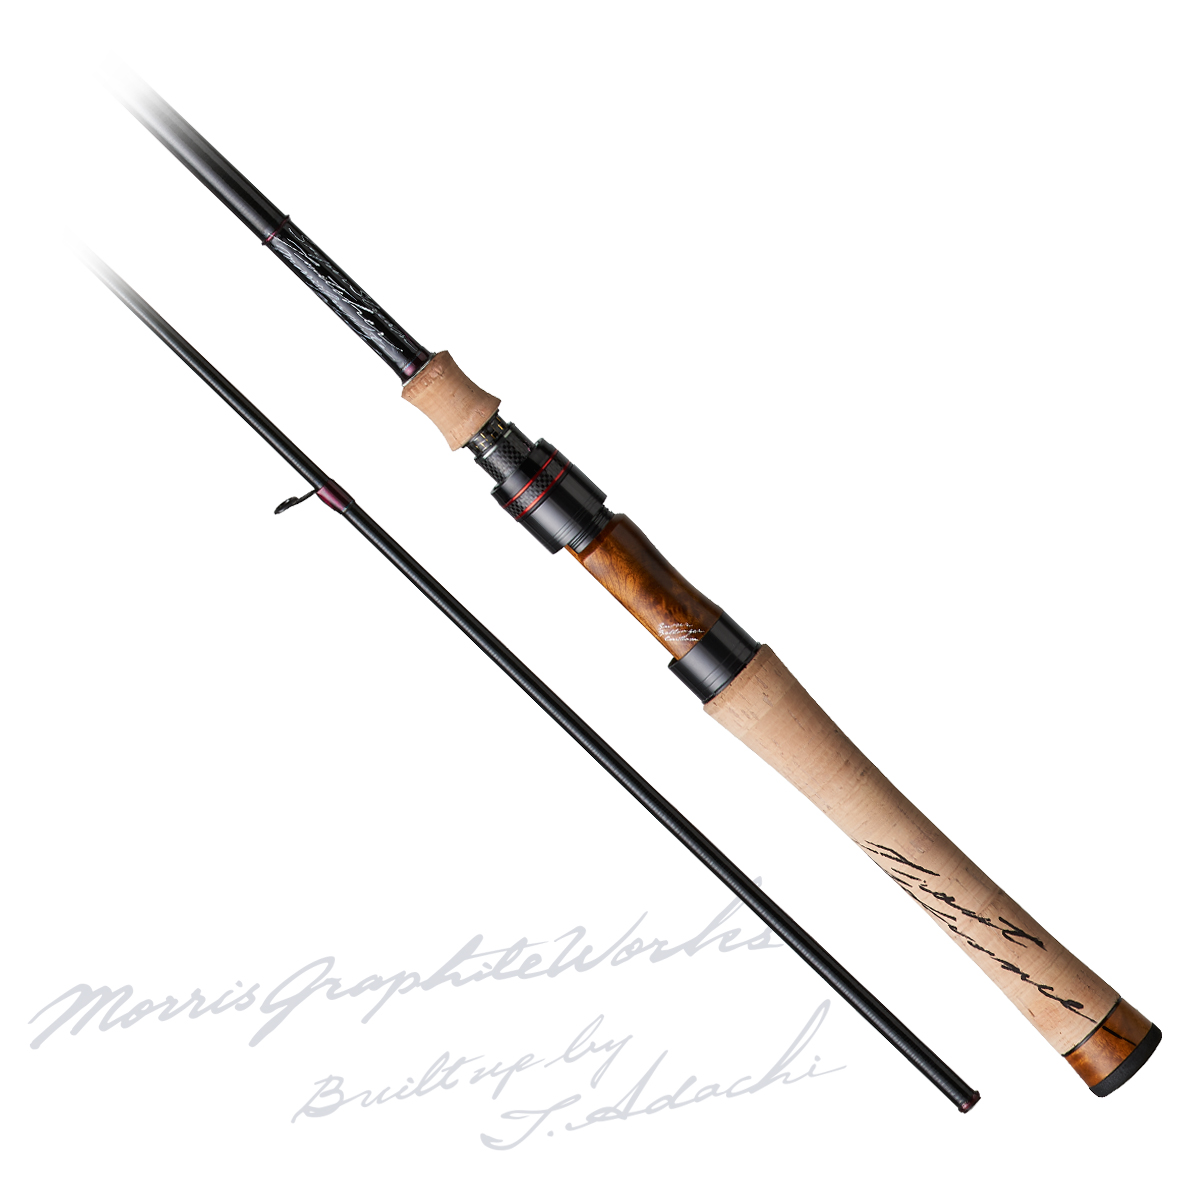 TRD Native Trout Rod